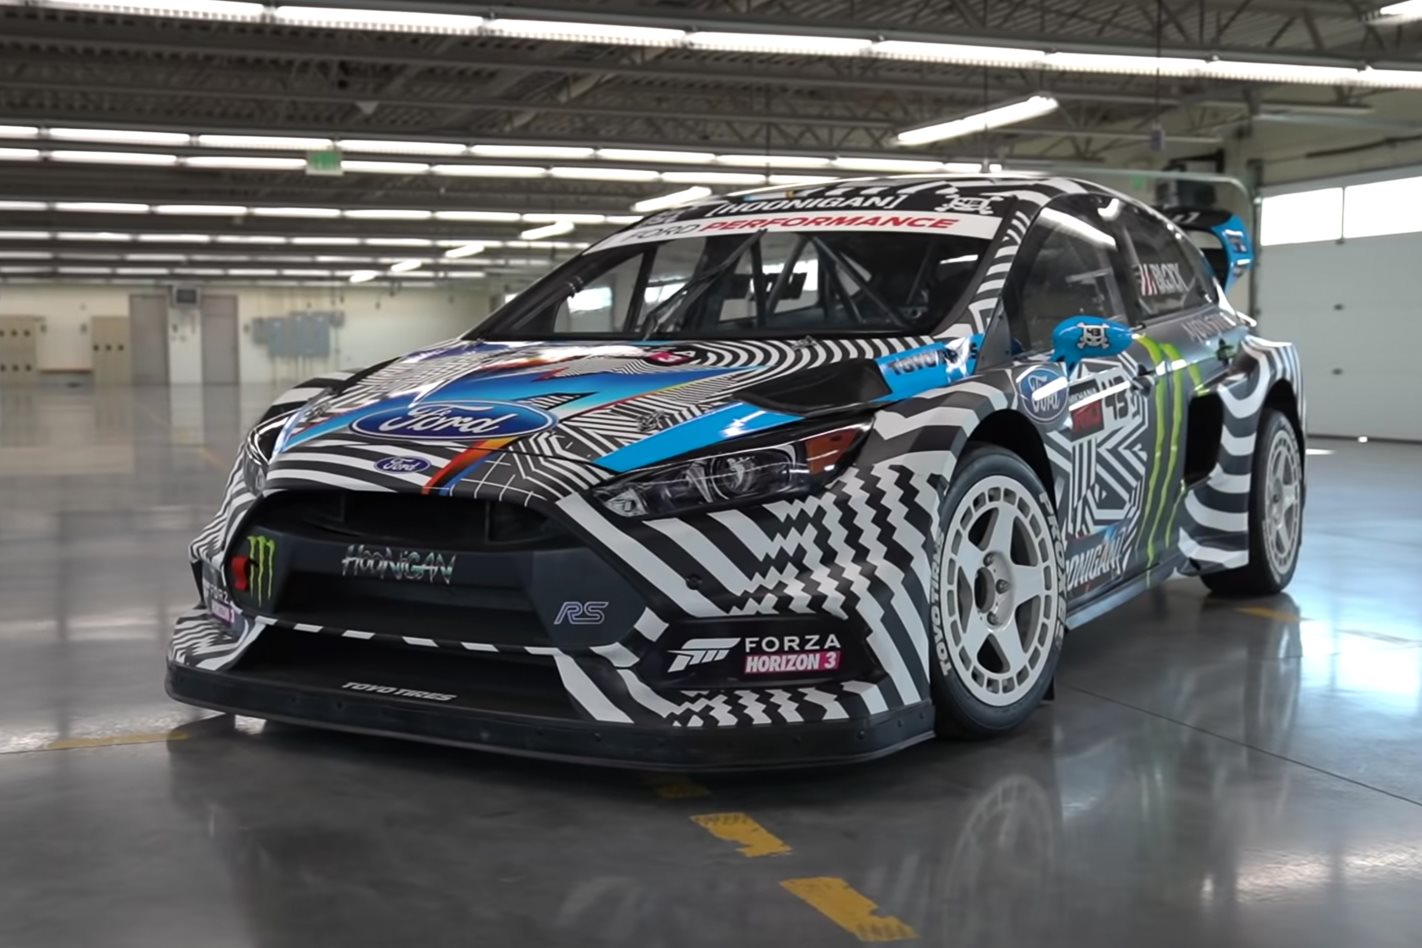 Ken Block S Ford Focus Gymkhana Car Is Coming To Australia